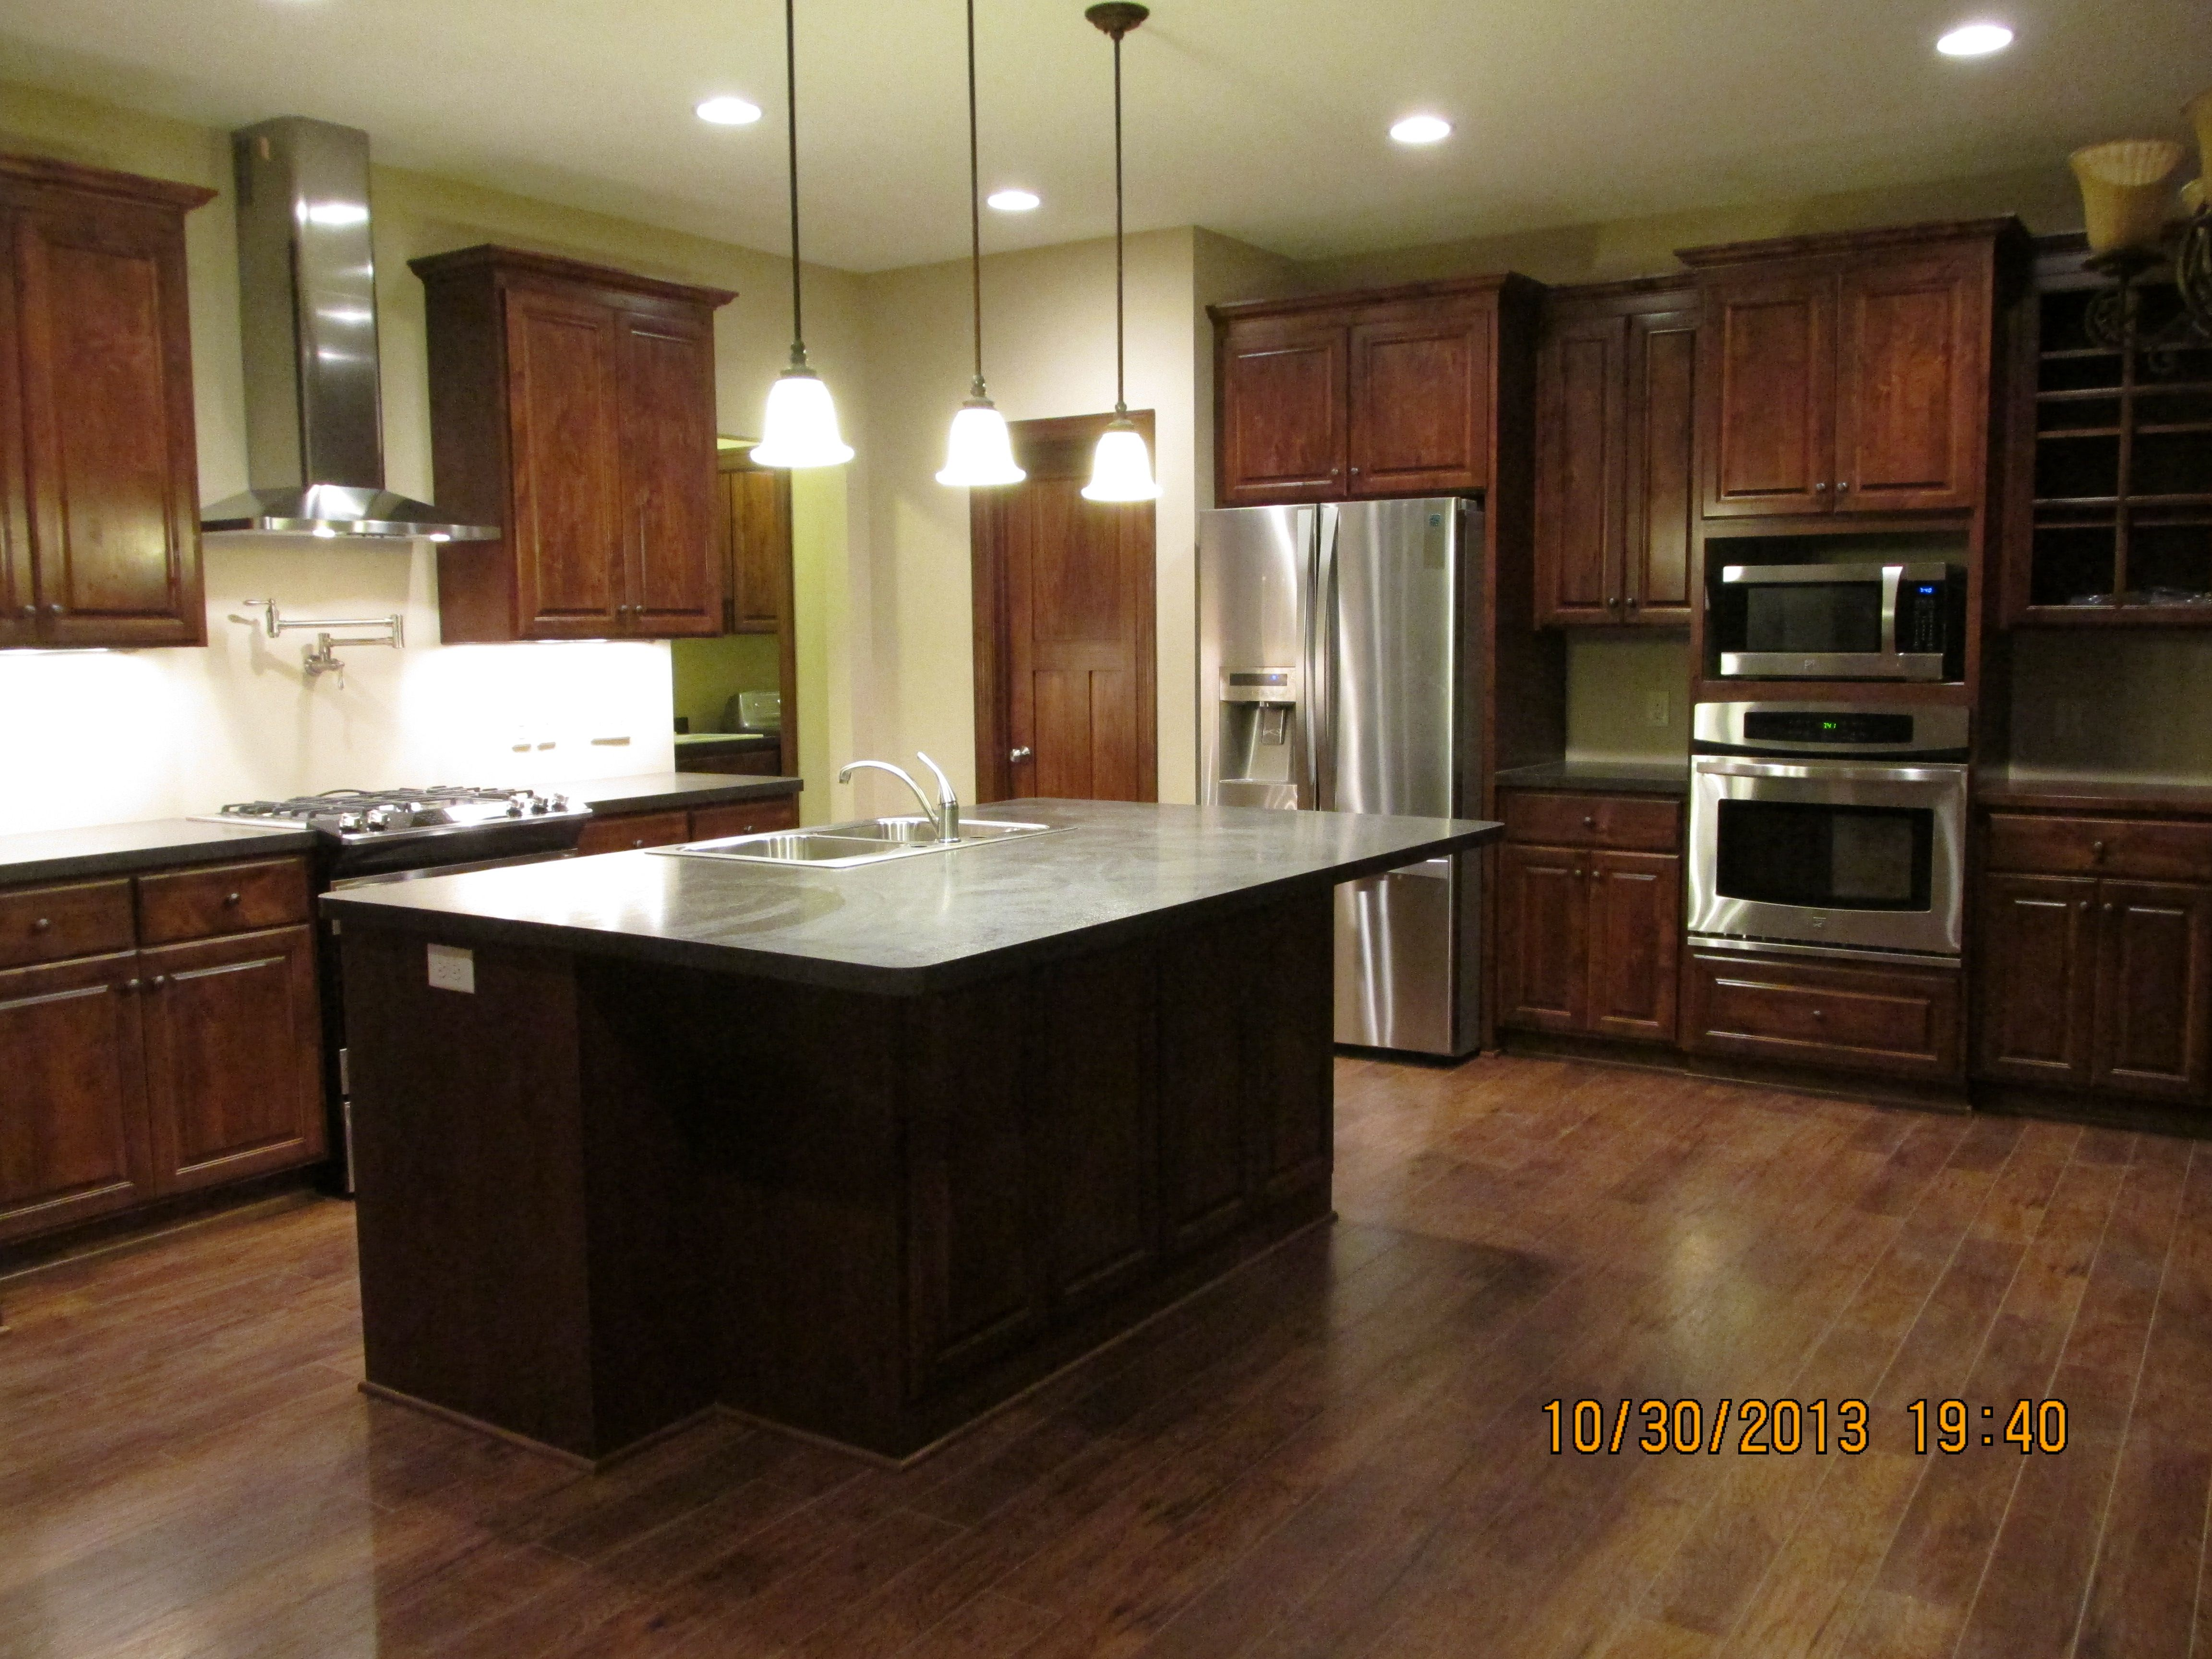 Knotty Alder cabinets w/espresso stain...popular color combination ...